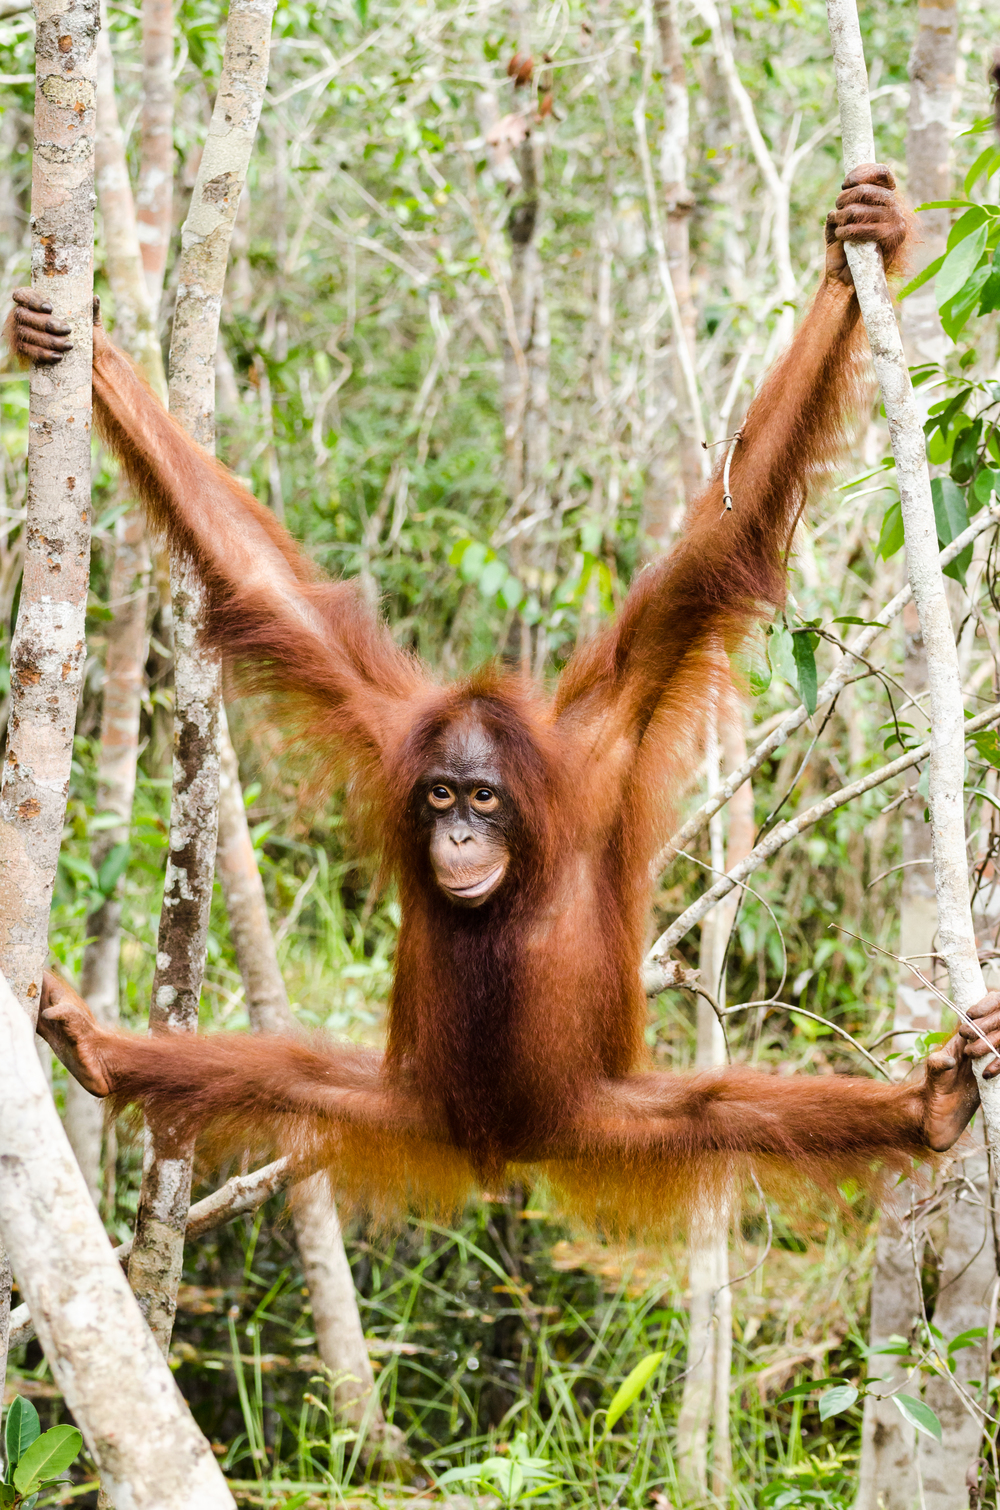 orang-utan-hanging-in-trees.jpg